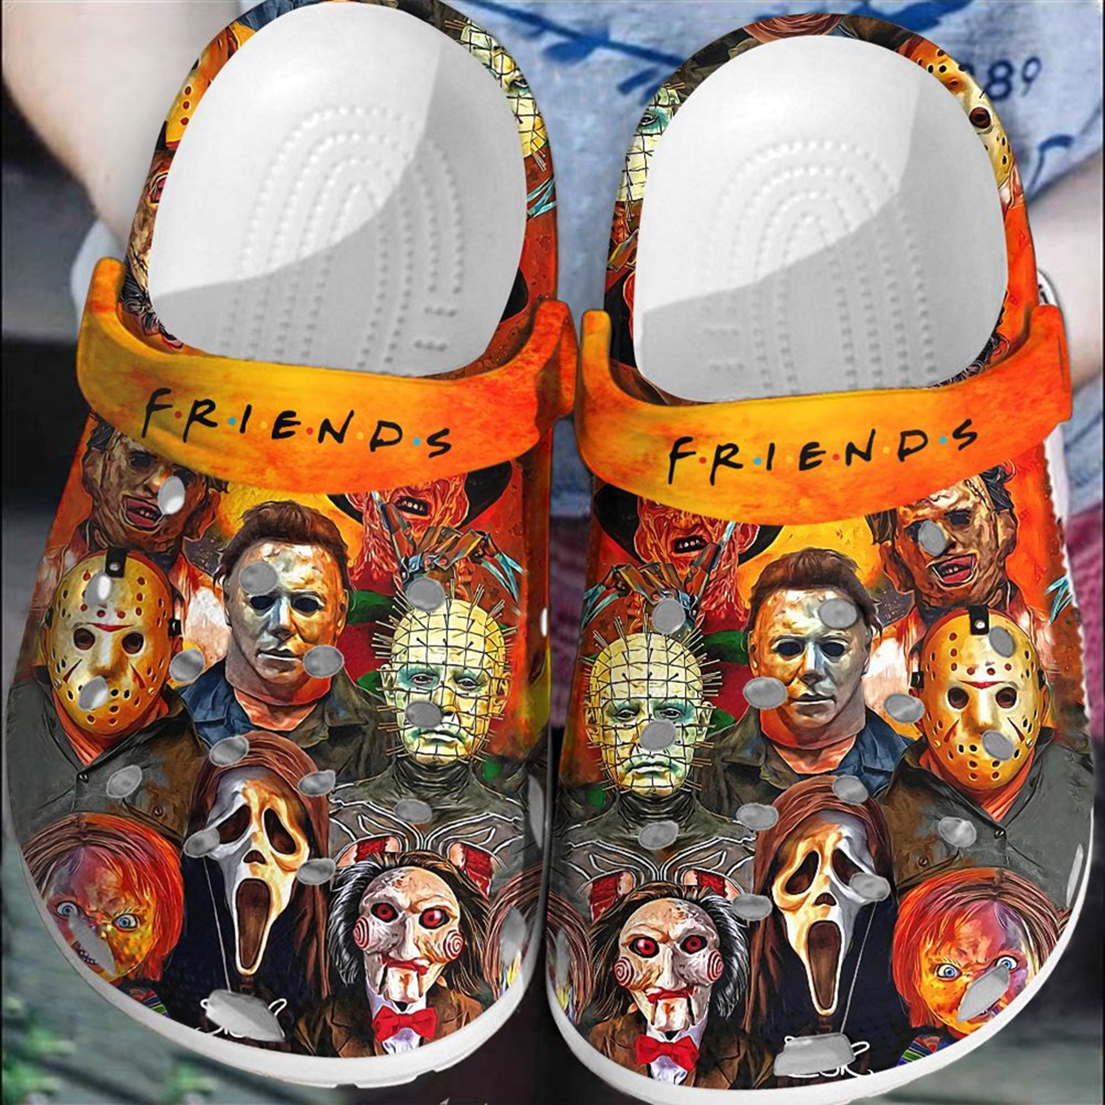 Friends halloween horror characters crocband crocs shoes - Picture 1